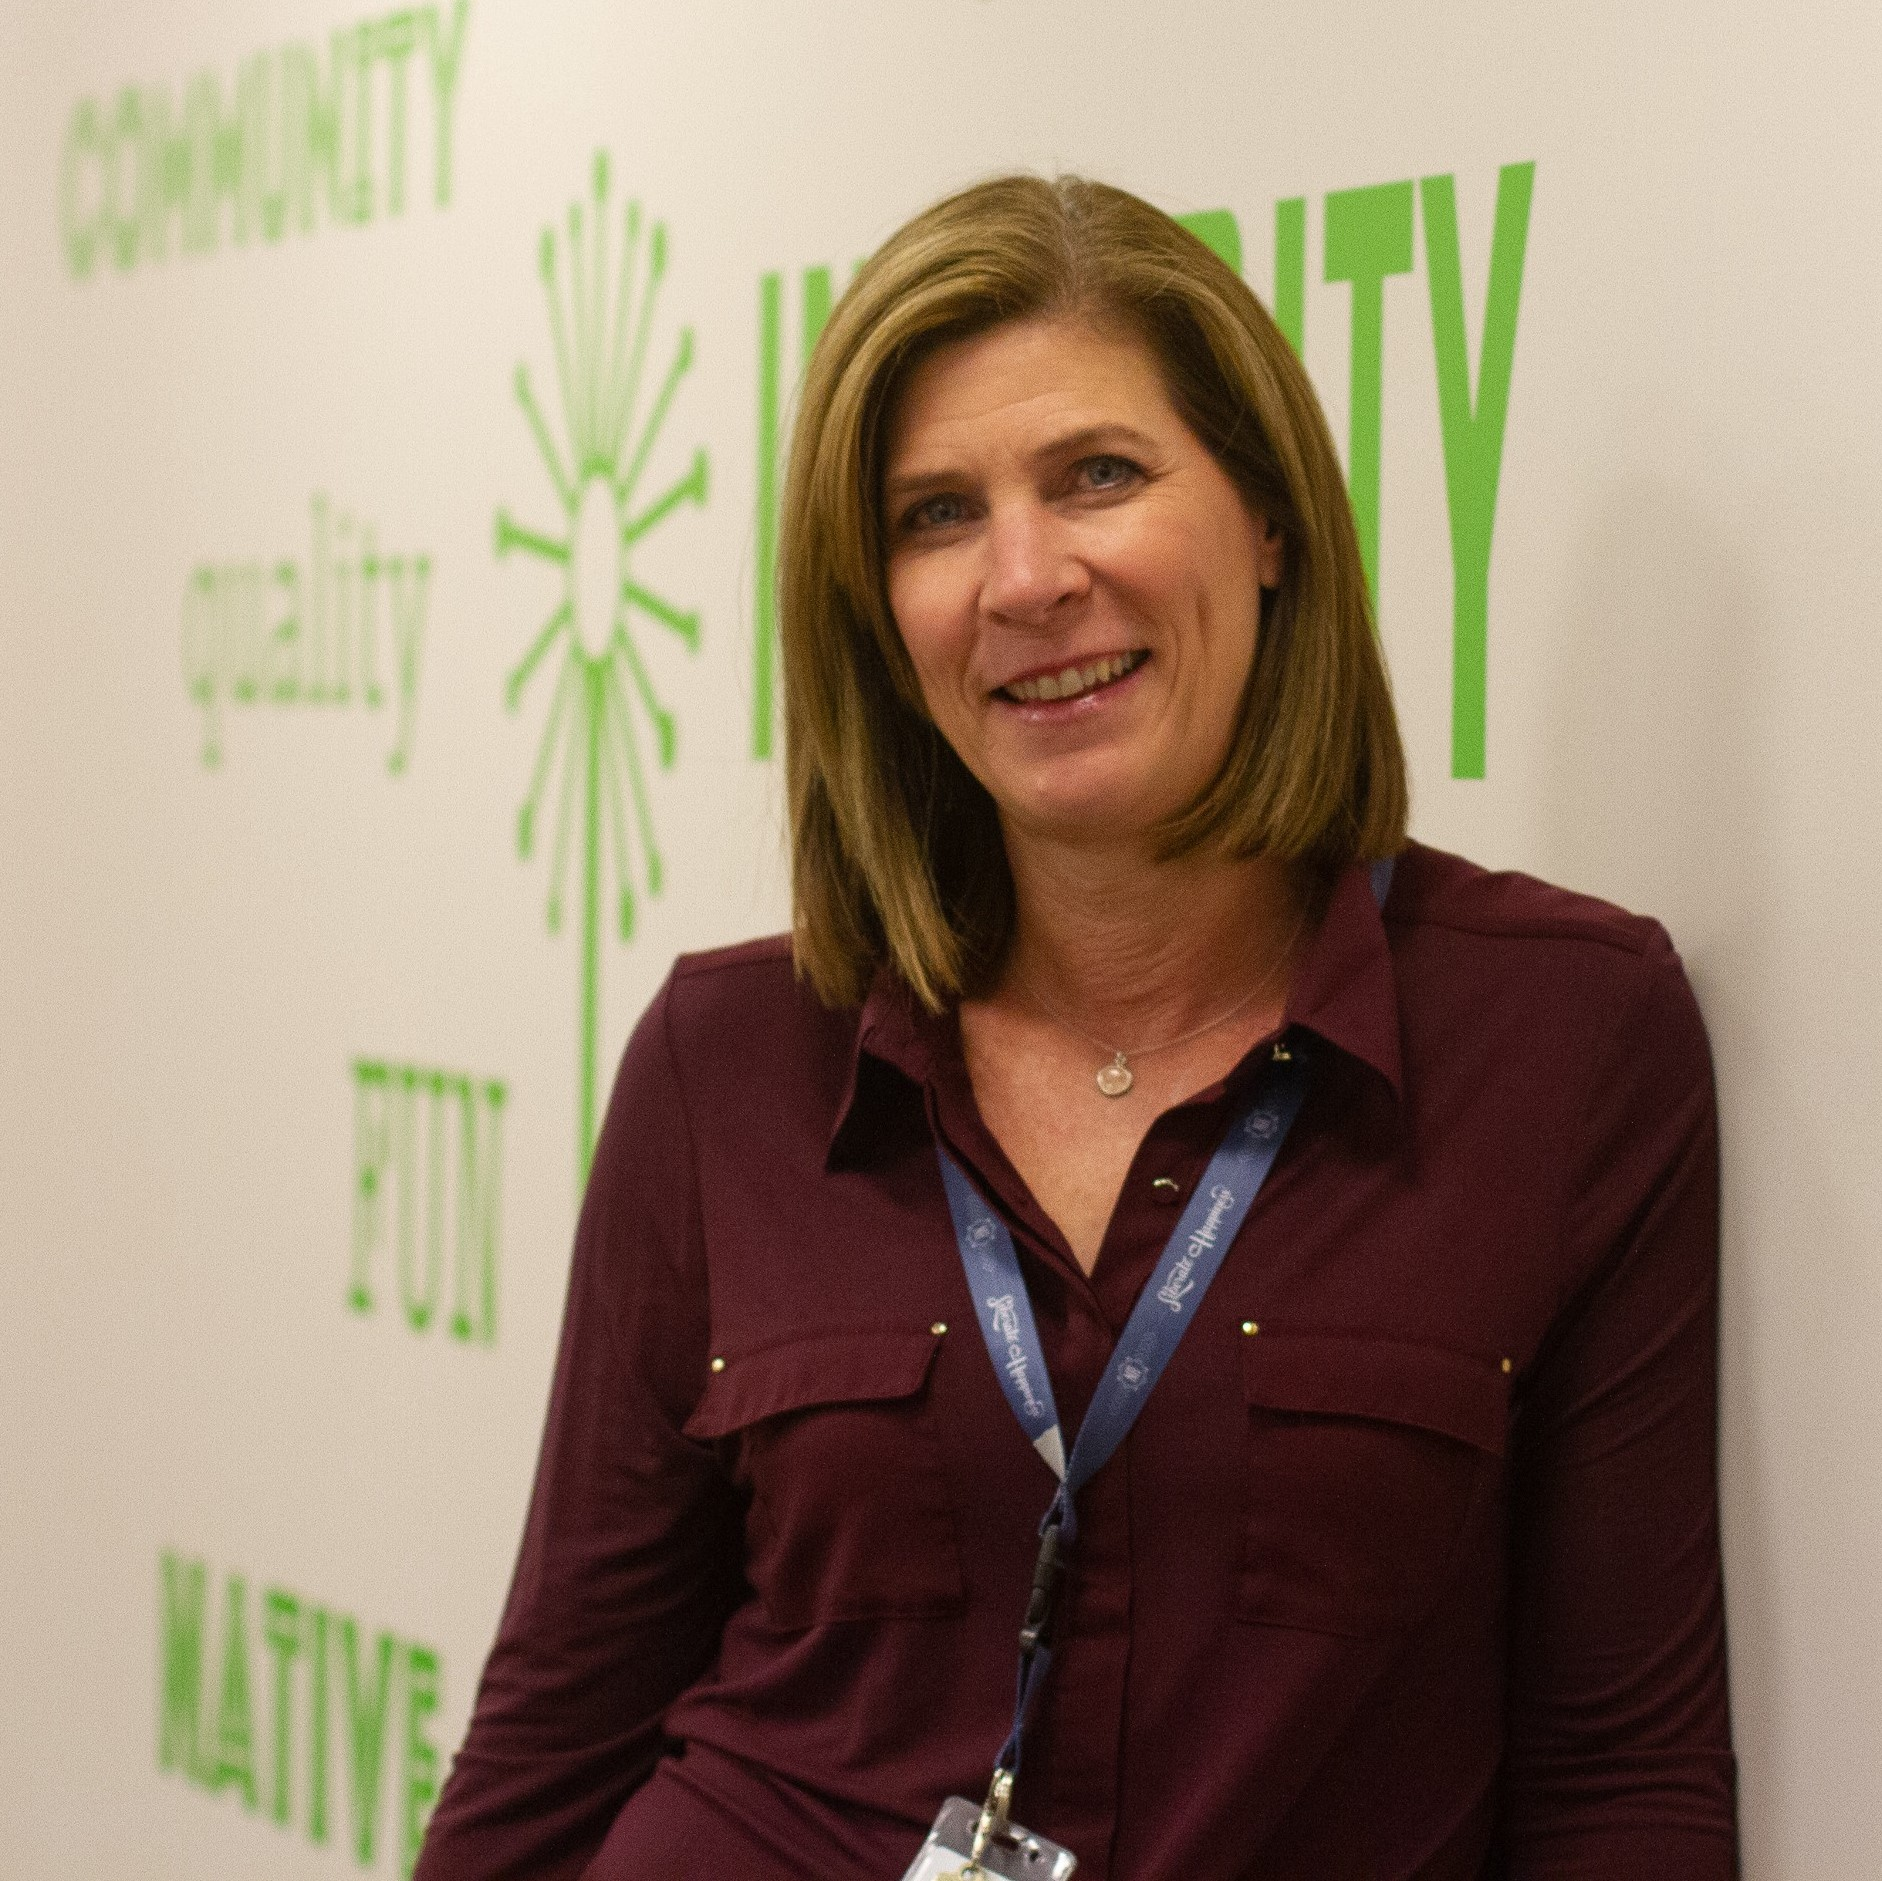 Beth Kotarba is the COO of Native Roots Dispensary, one of the most successful chain dispensaries in Colorado.